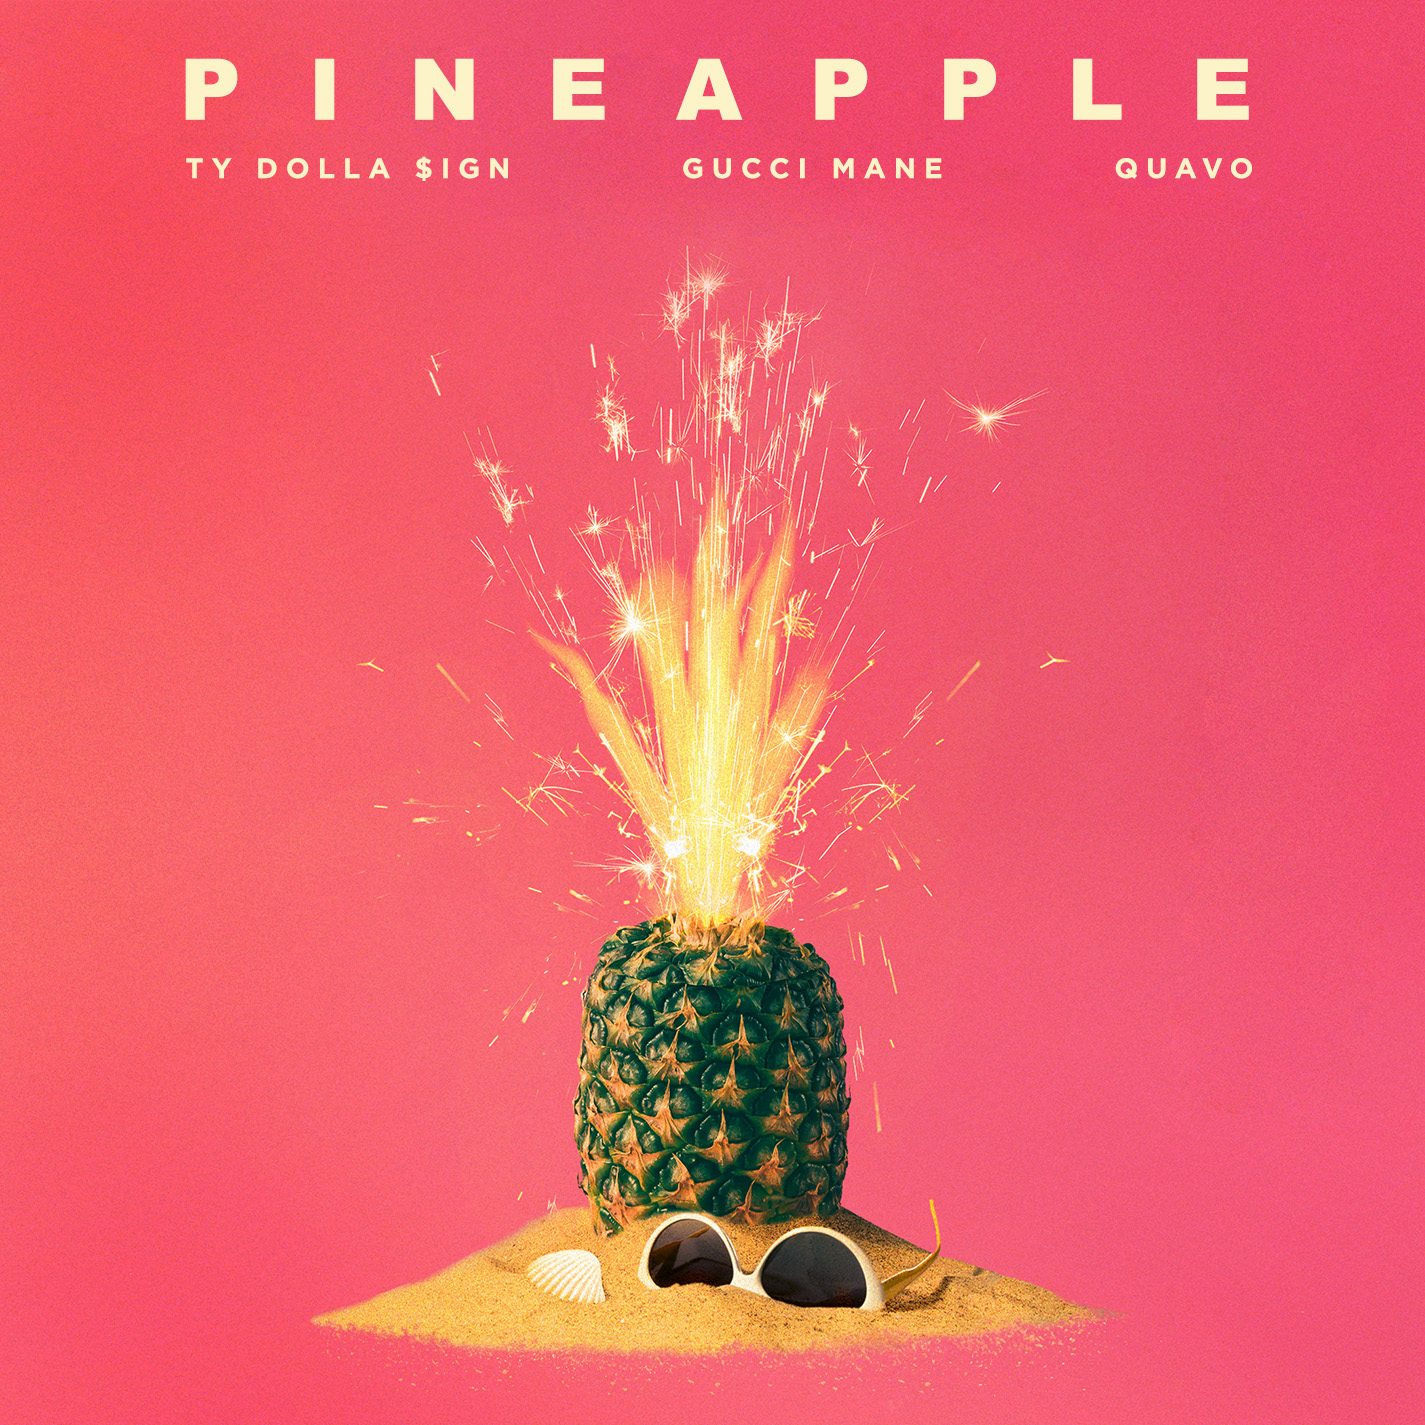 Ty Dolla $ign - Pineapple single art